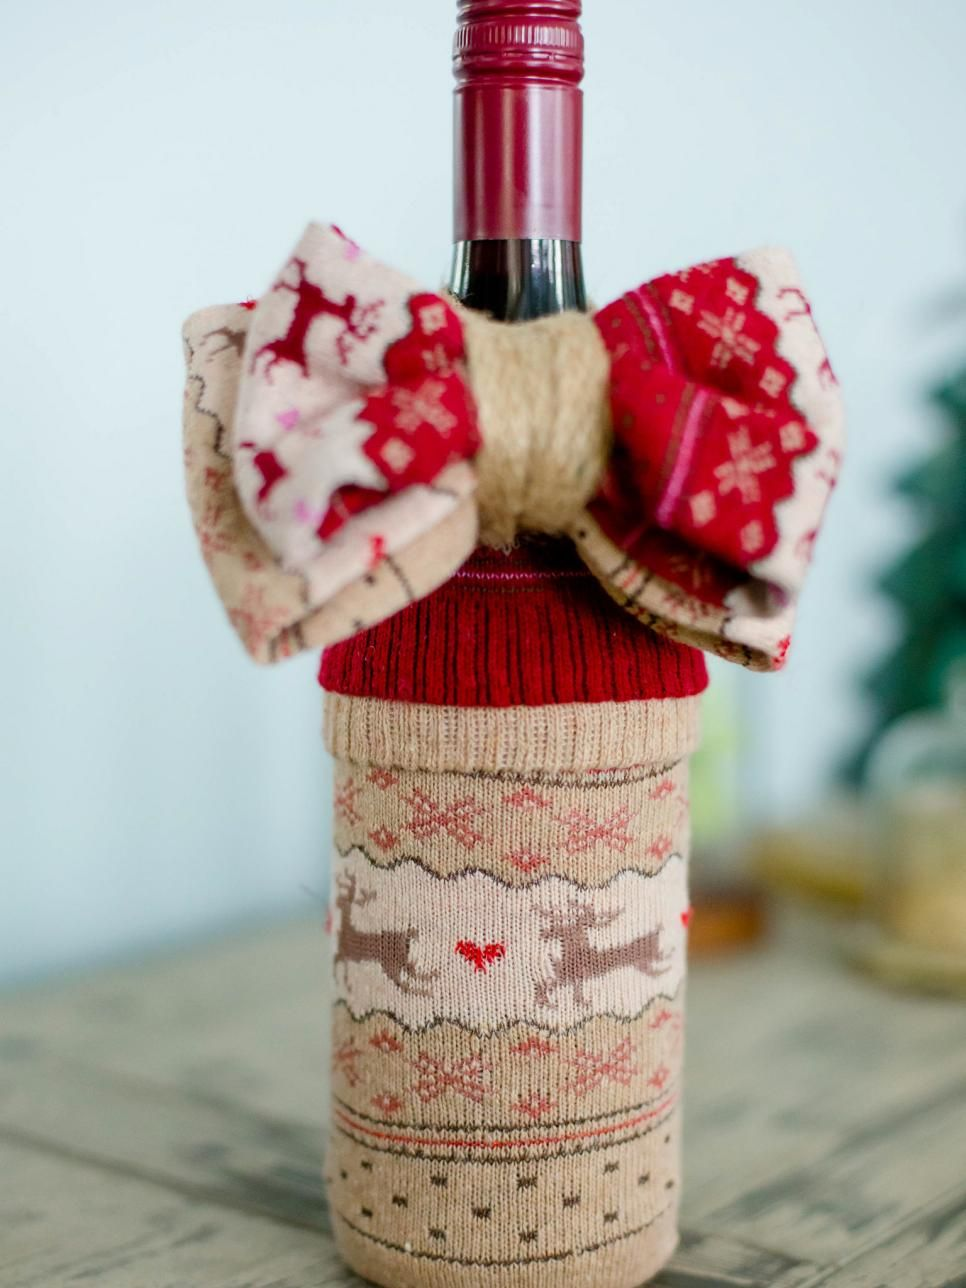 How To Decorate A Wine Bottle For A Gift 10 Creative Ways To Wrap A Wine Bottle Gift  Wine Bottle Gift